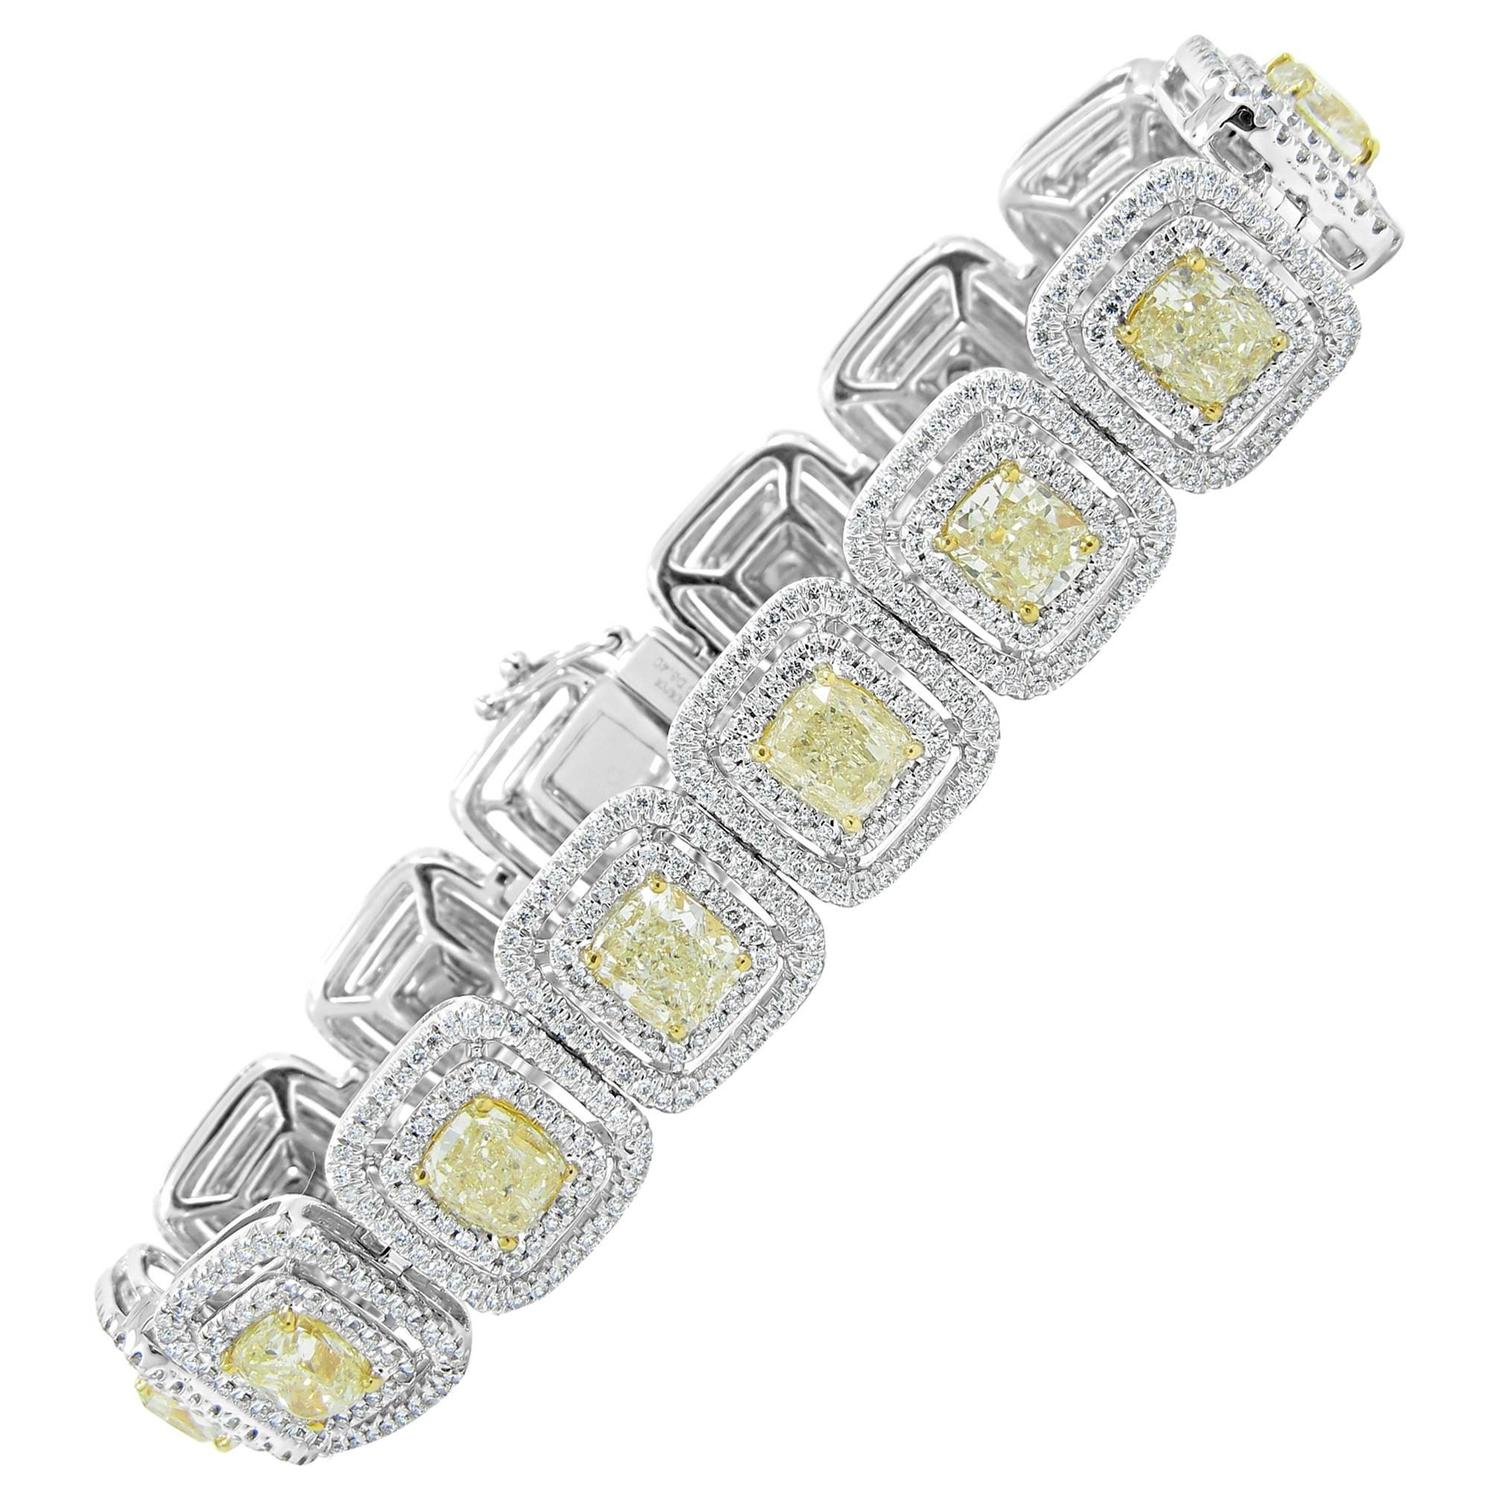 gem unique itm bracelet sterling multi ct natural in with two stone row diamond gold plated silver flash brass